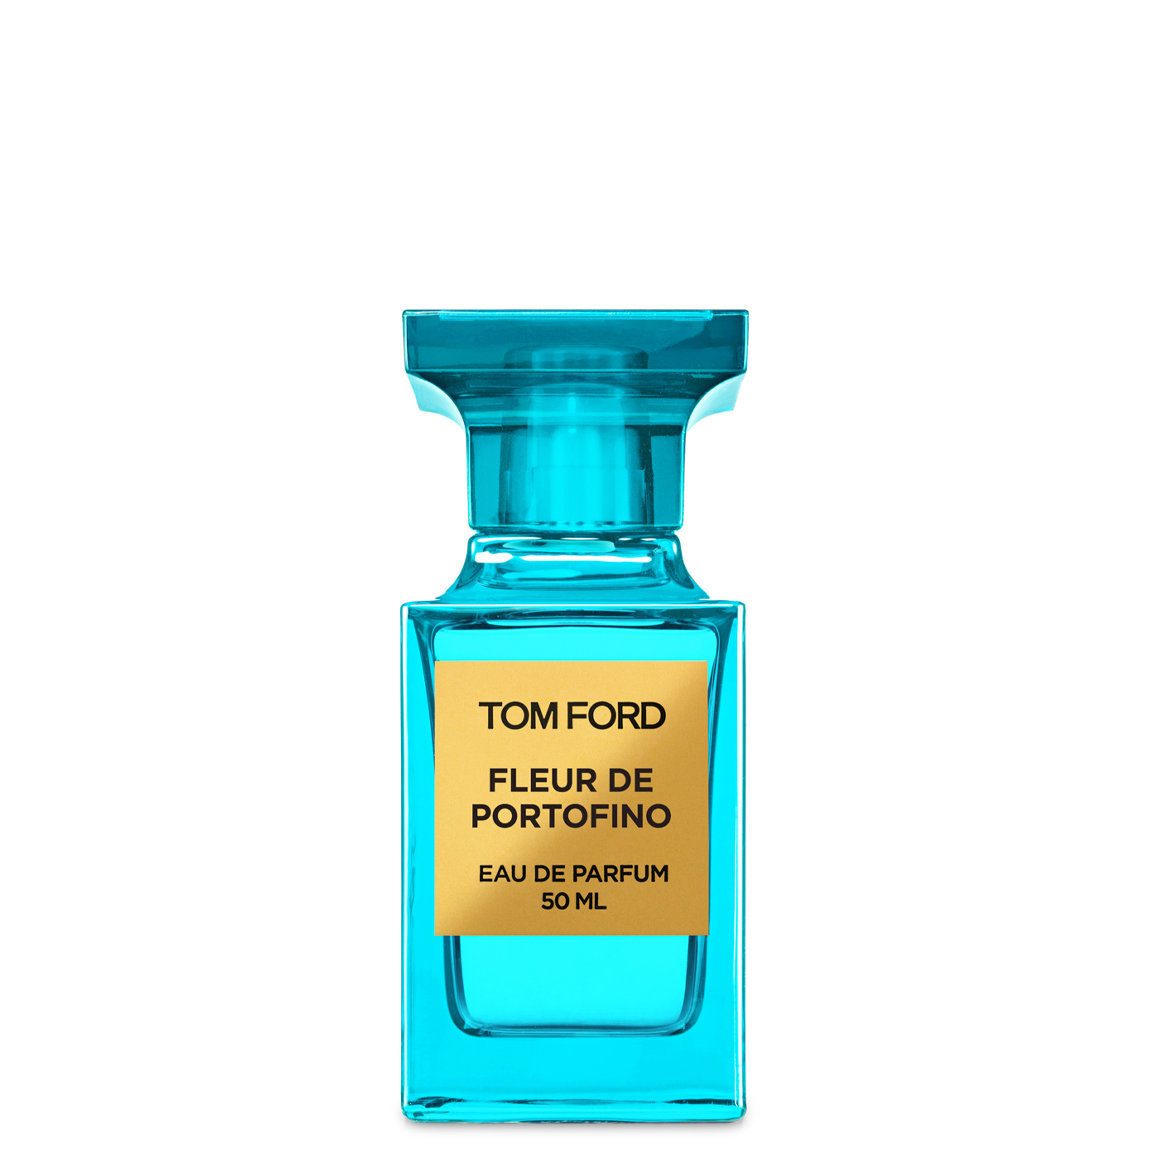 TOM FORD Fleur de Portofino 50 ml alternative view 1.